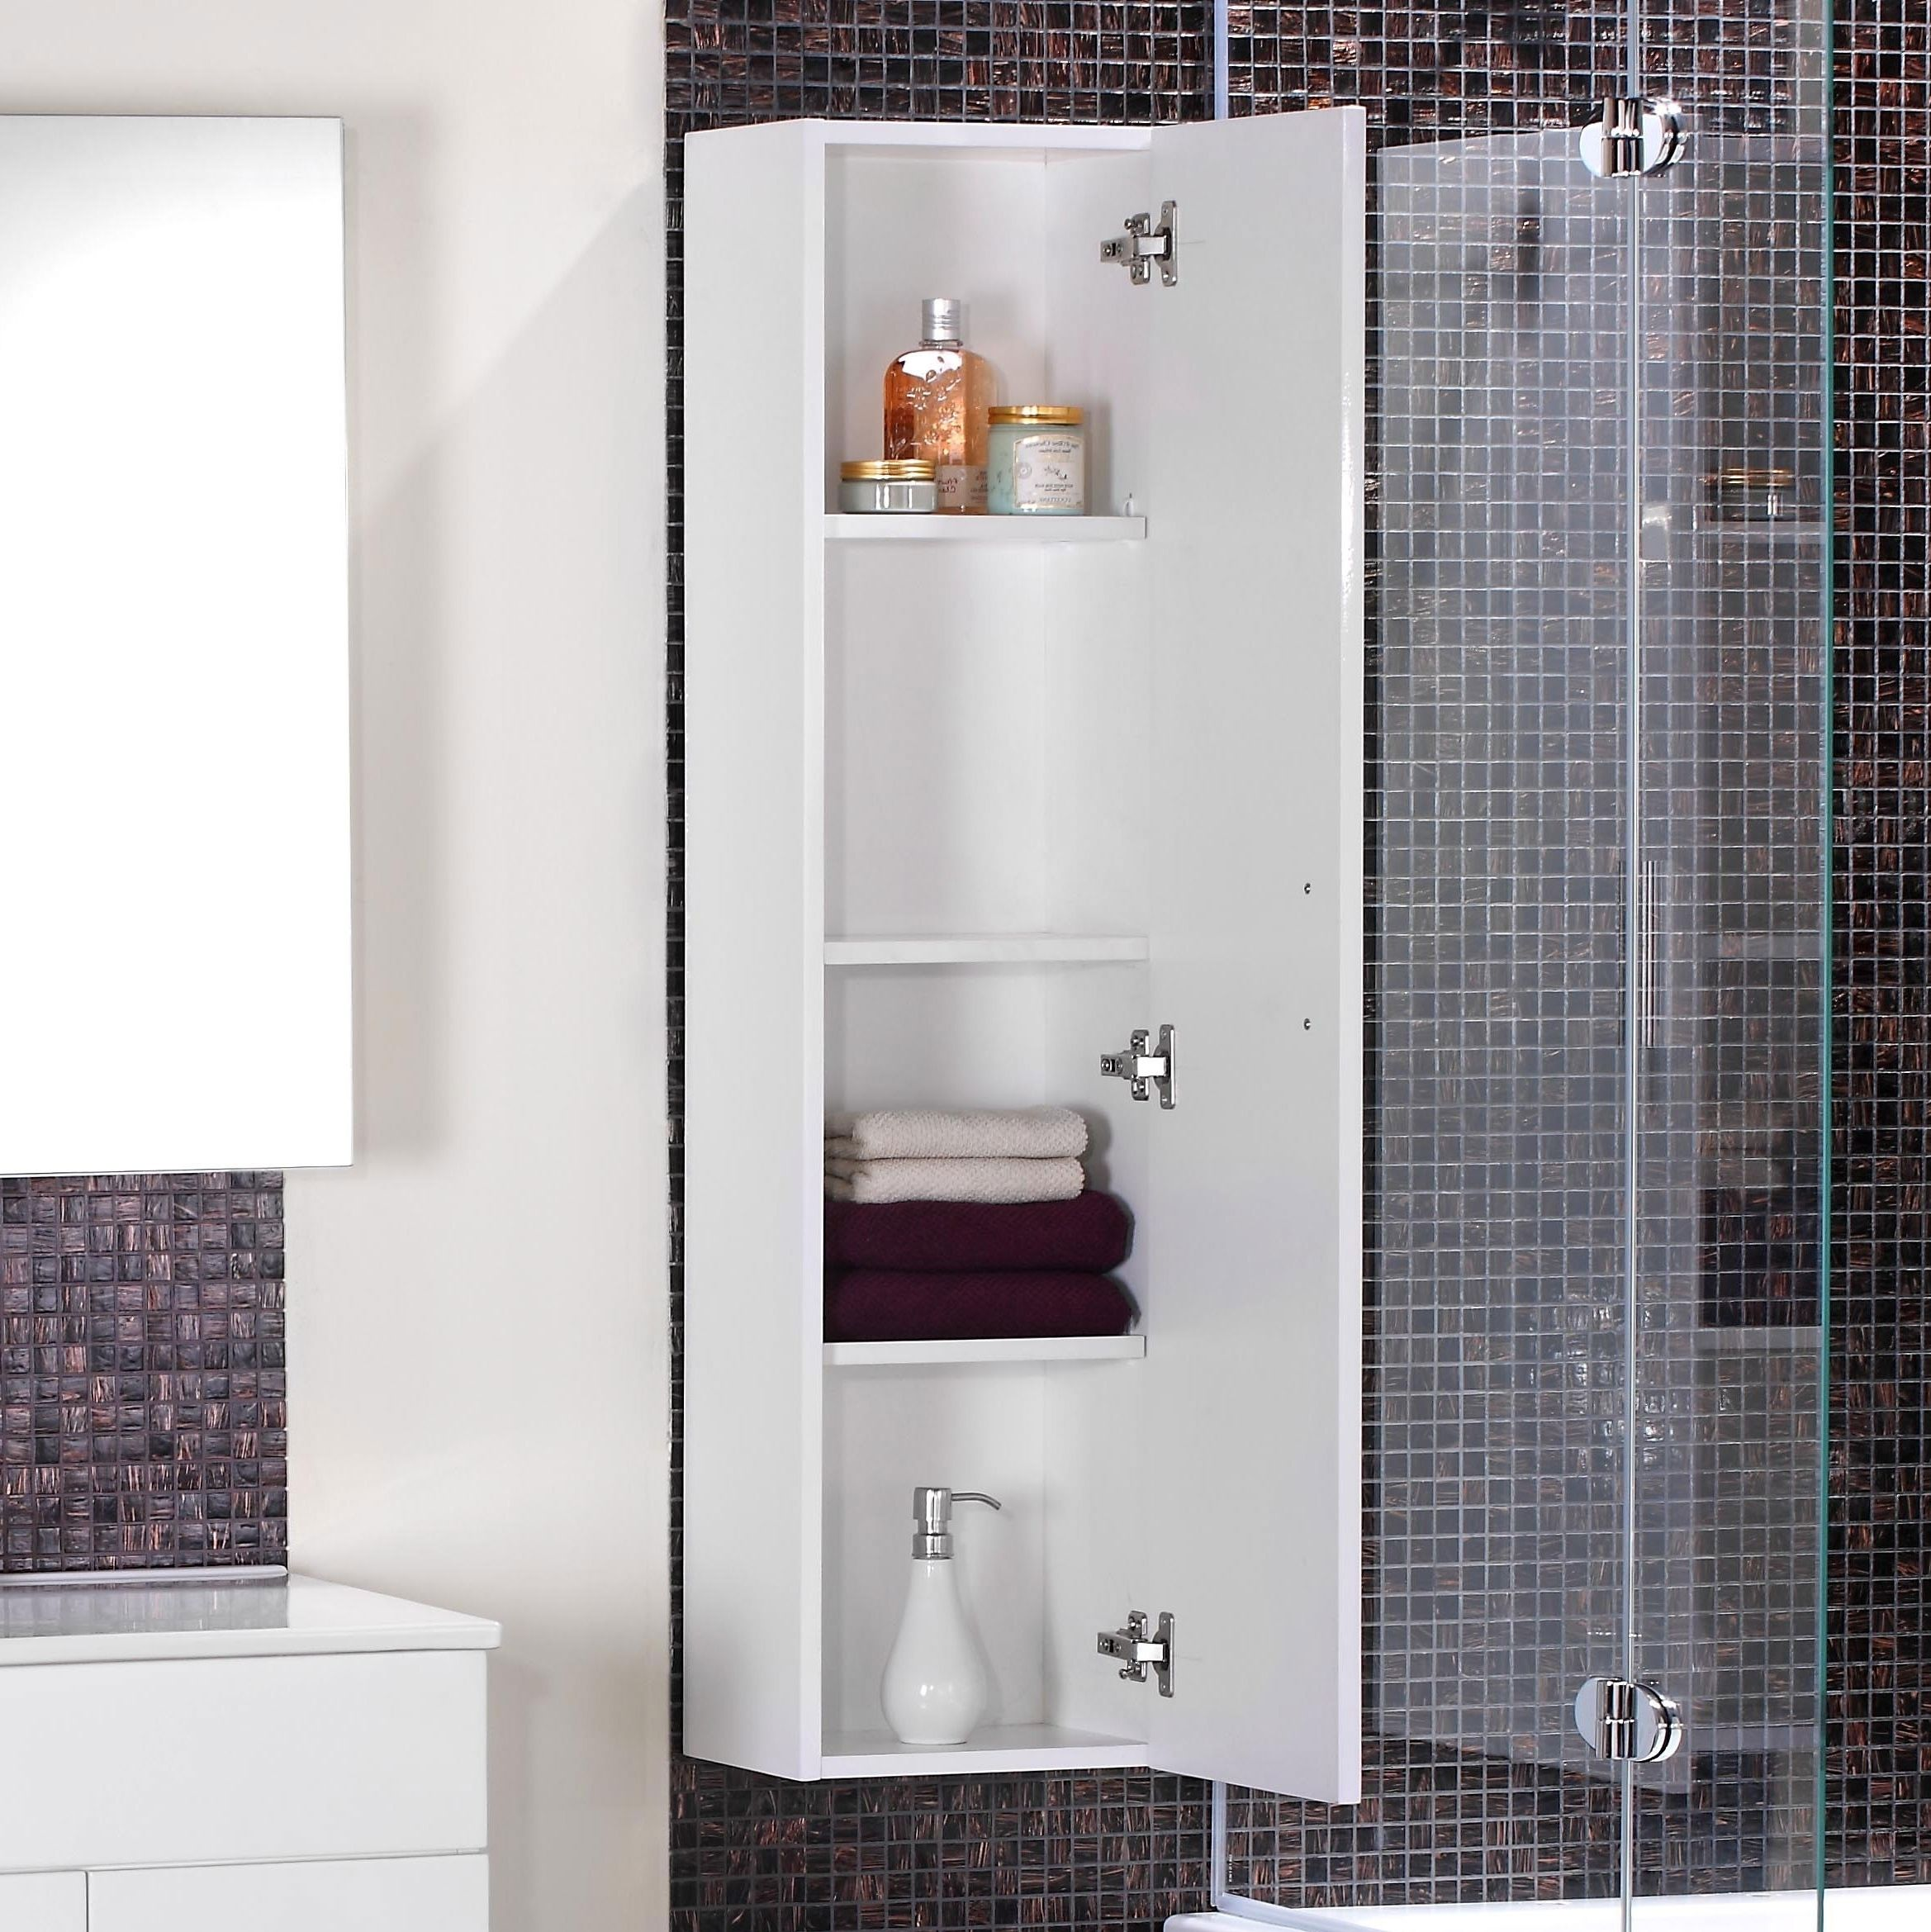 10 Coolest Bathroom Storage Ideas for an Efficient Home | Small ...